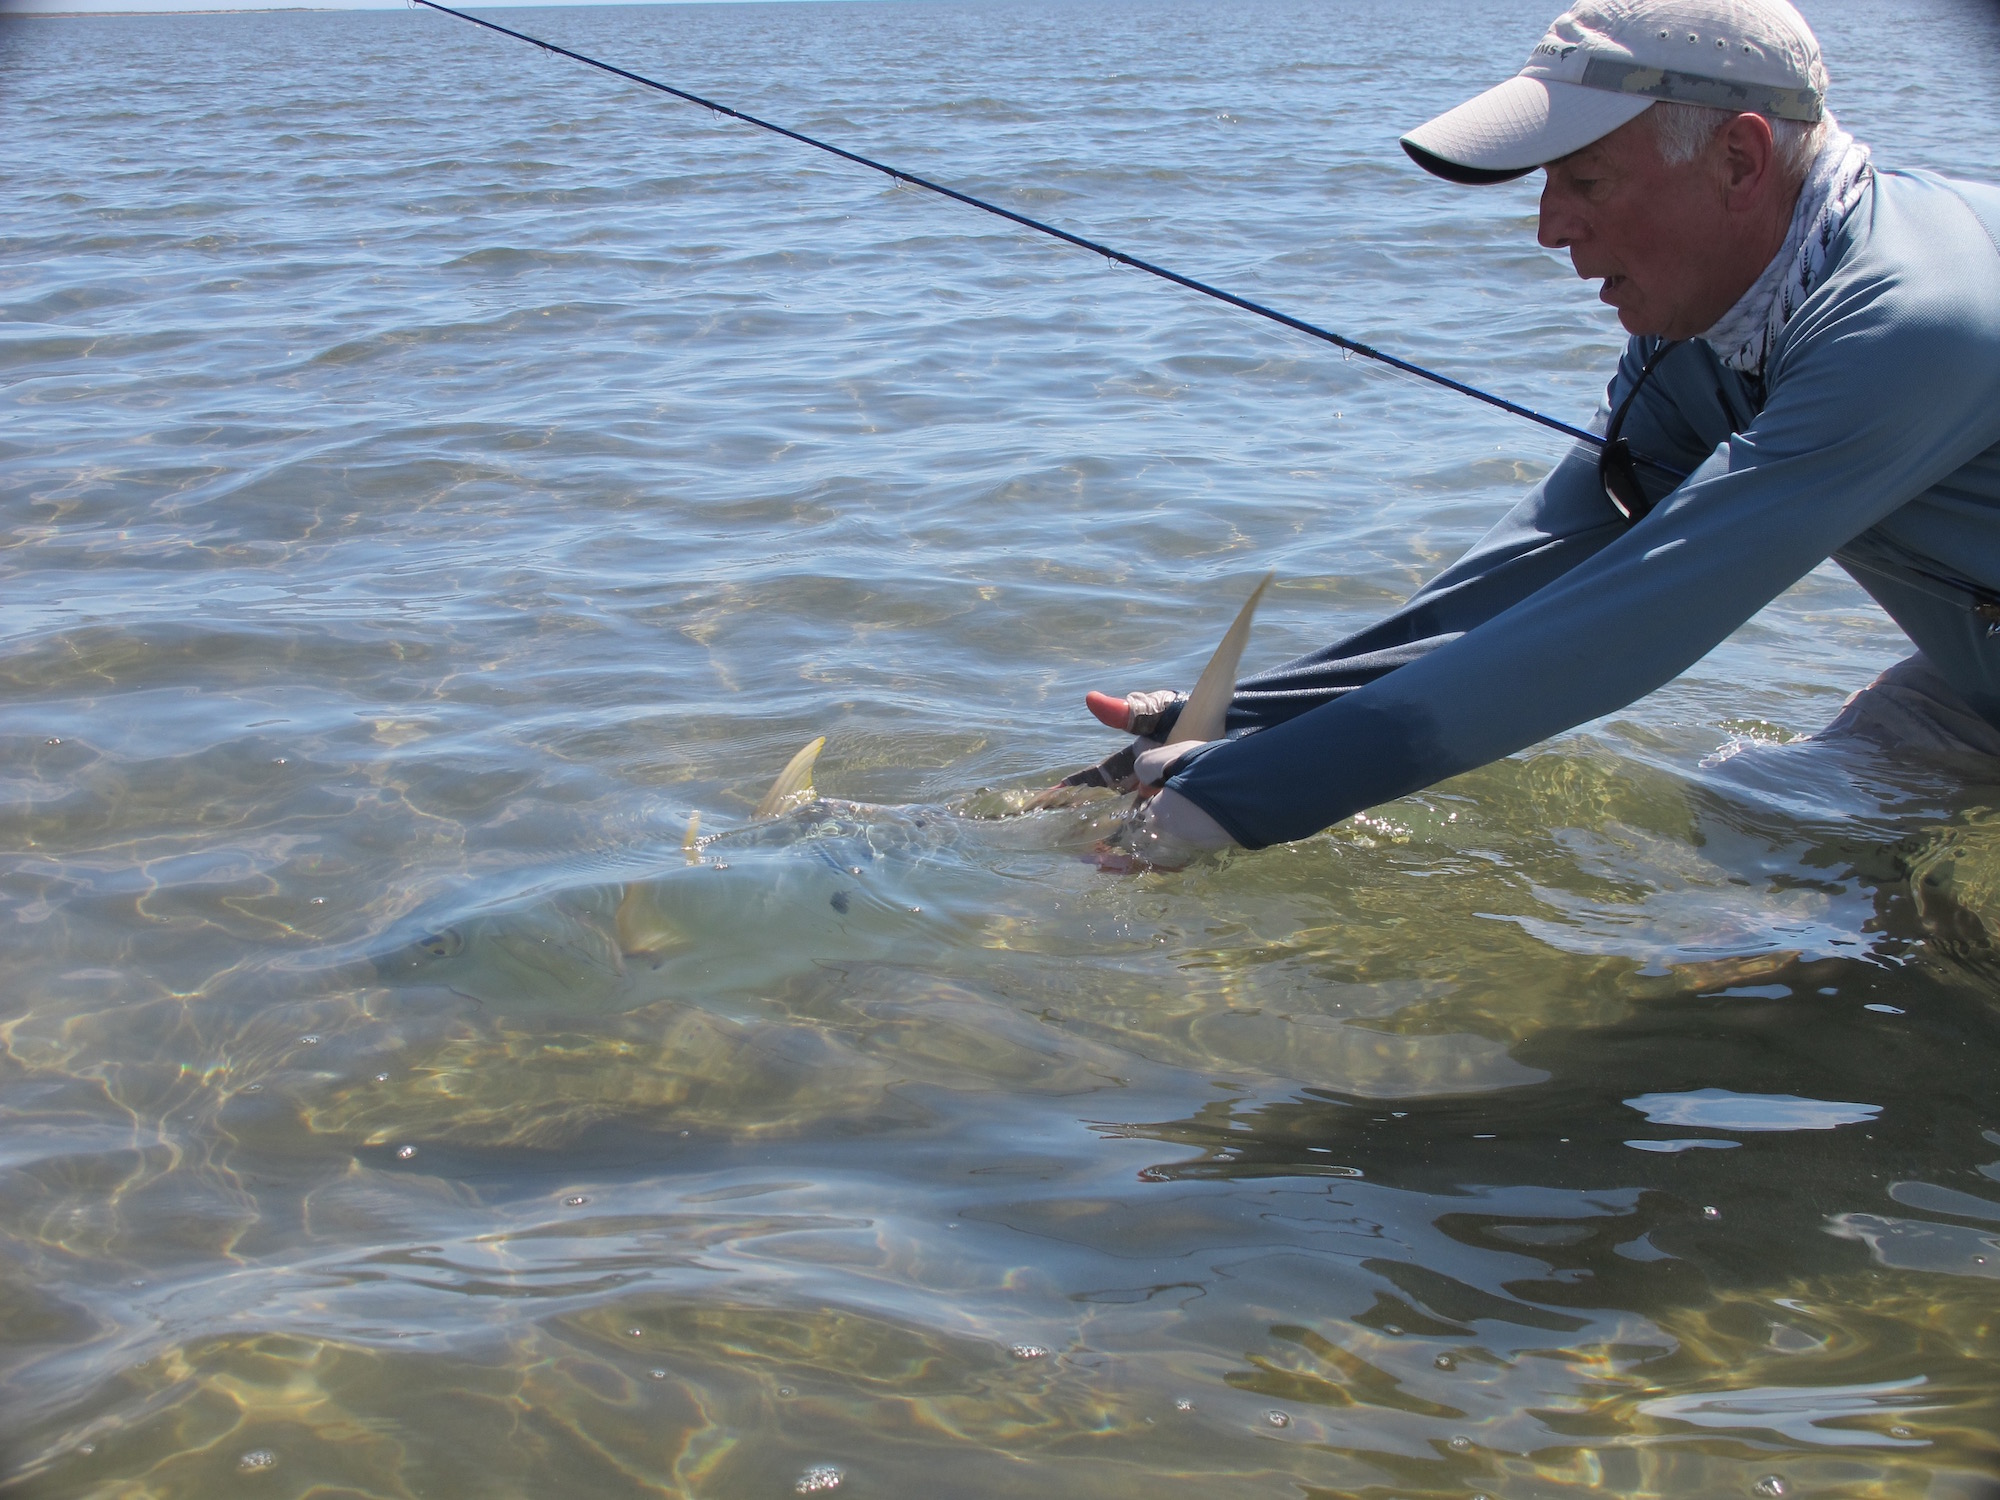 Golden trevally release